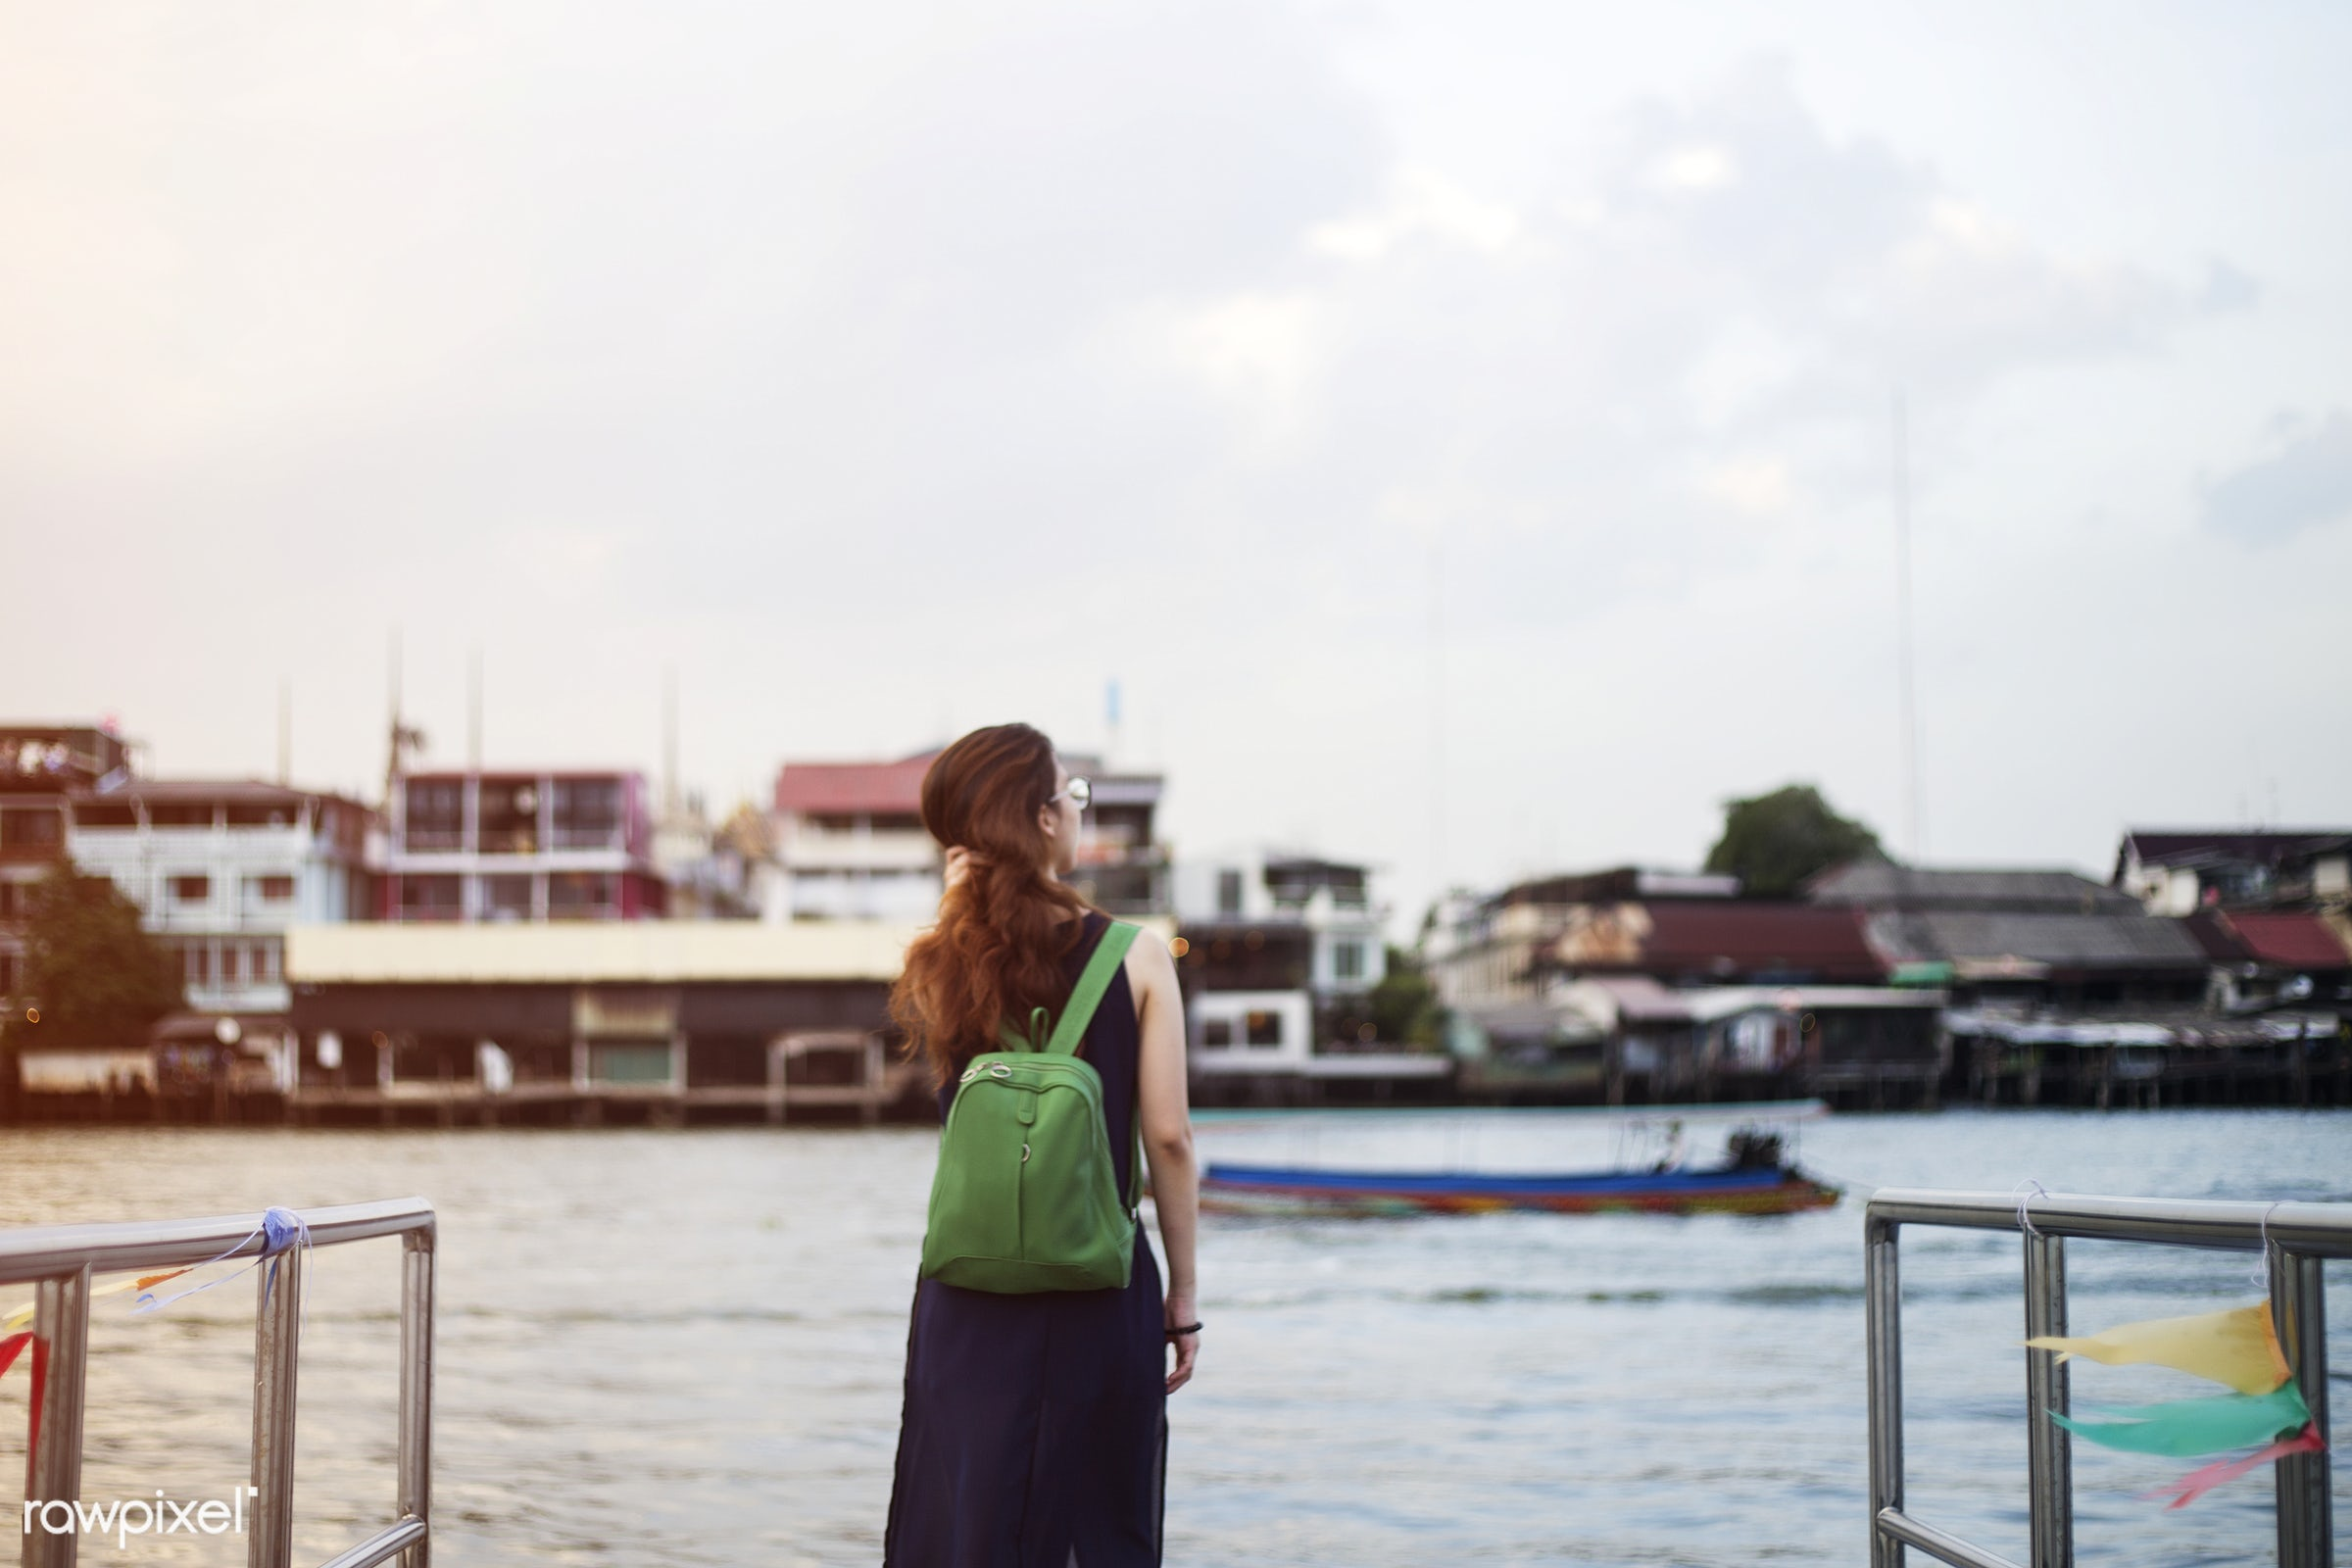 travel, look up, thai, back, alone, asian, bag, dock, explore, female, one, outdoors, people, person, river, riverside, sky...